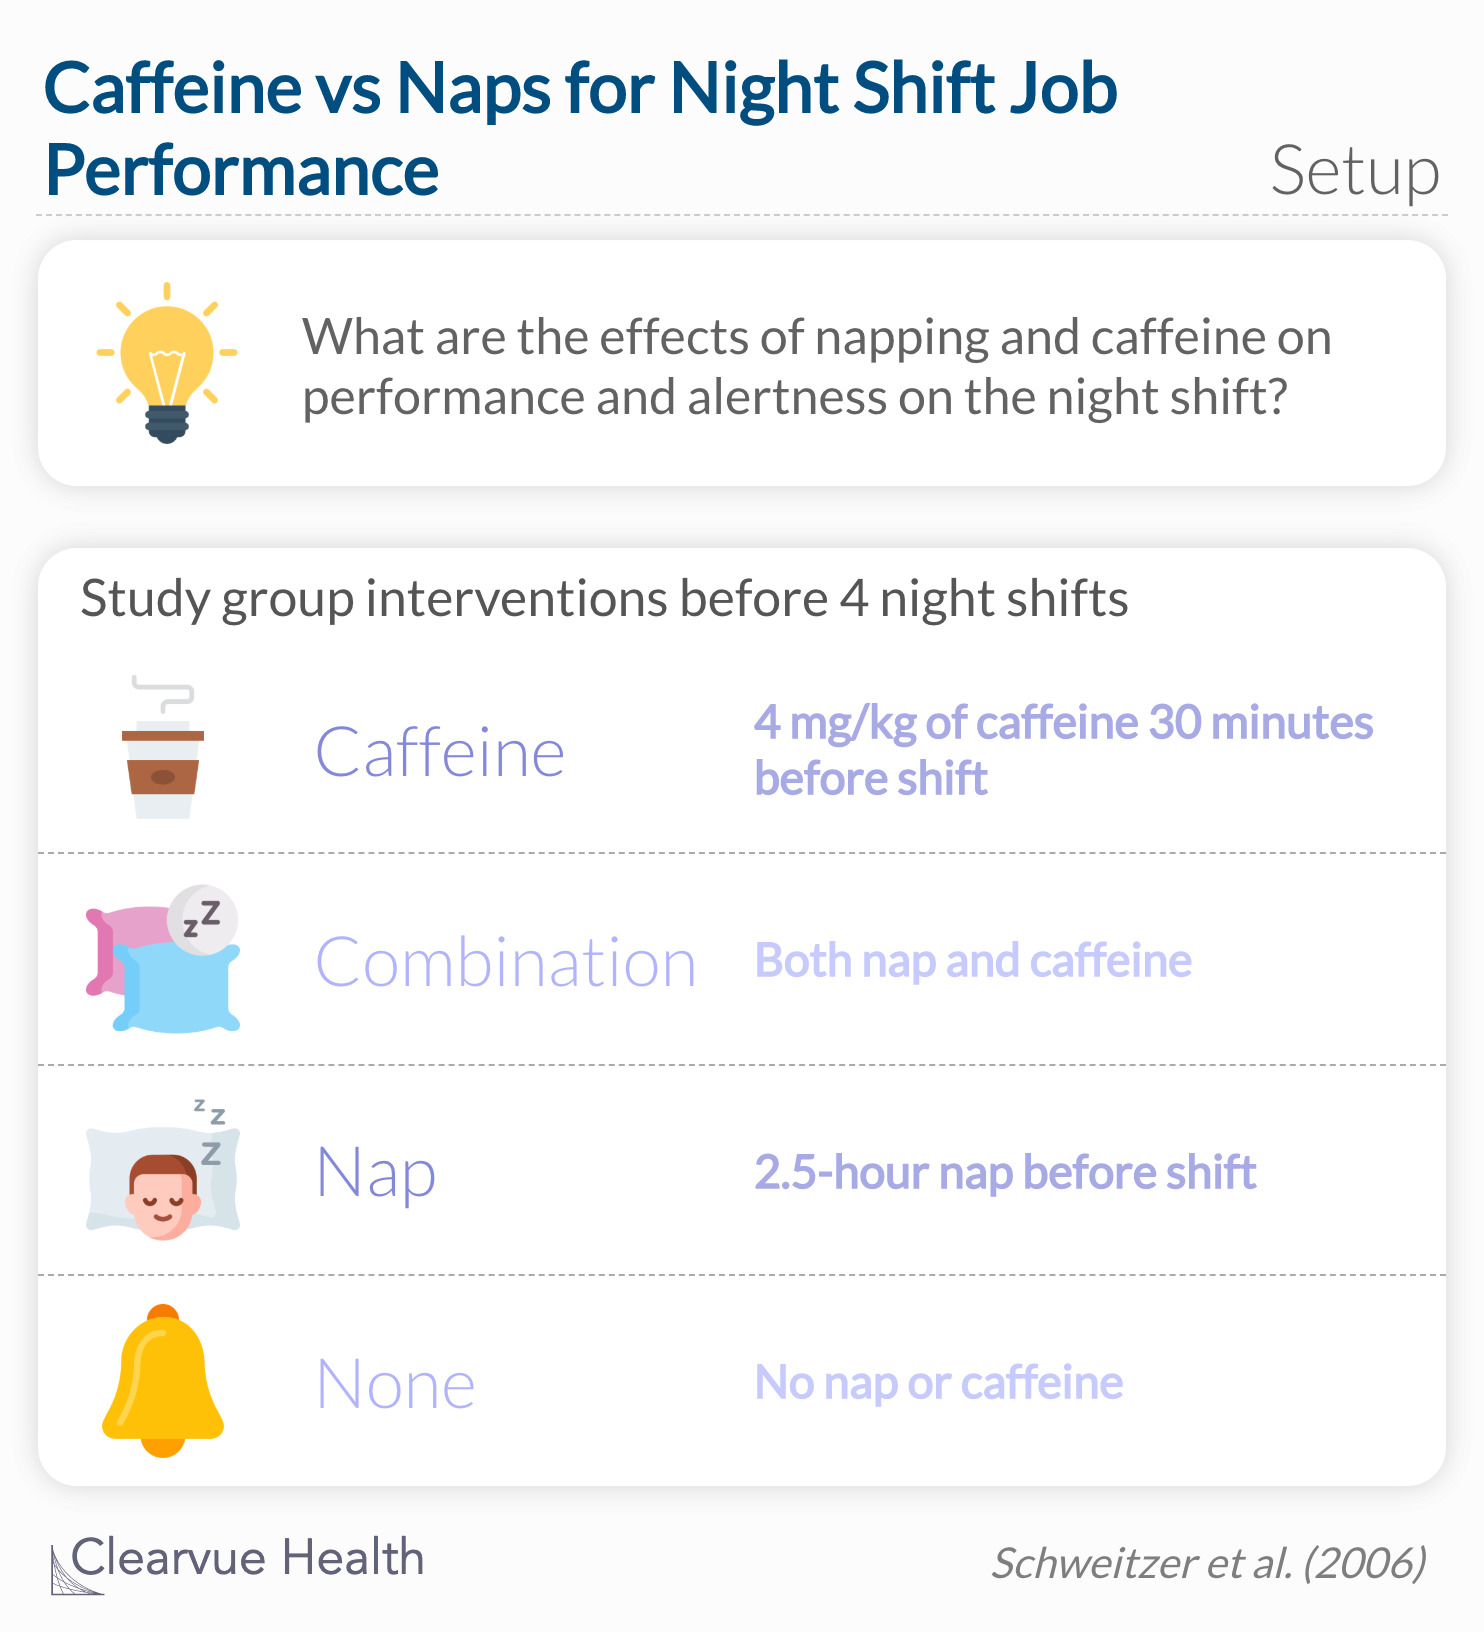 What are the effects of napping and caffeine on performance and alertness on the night shift?